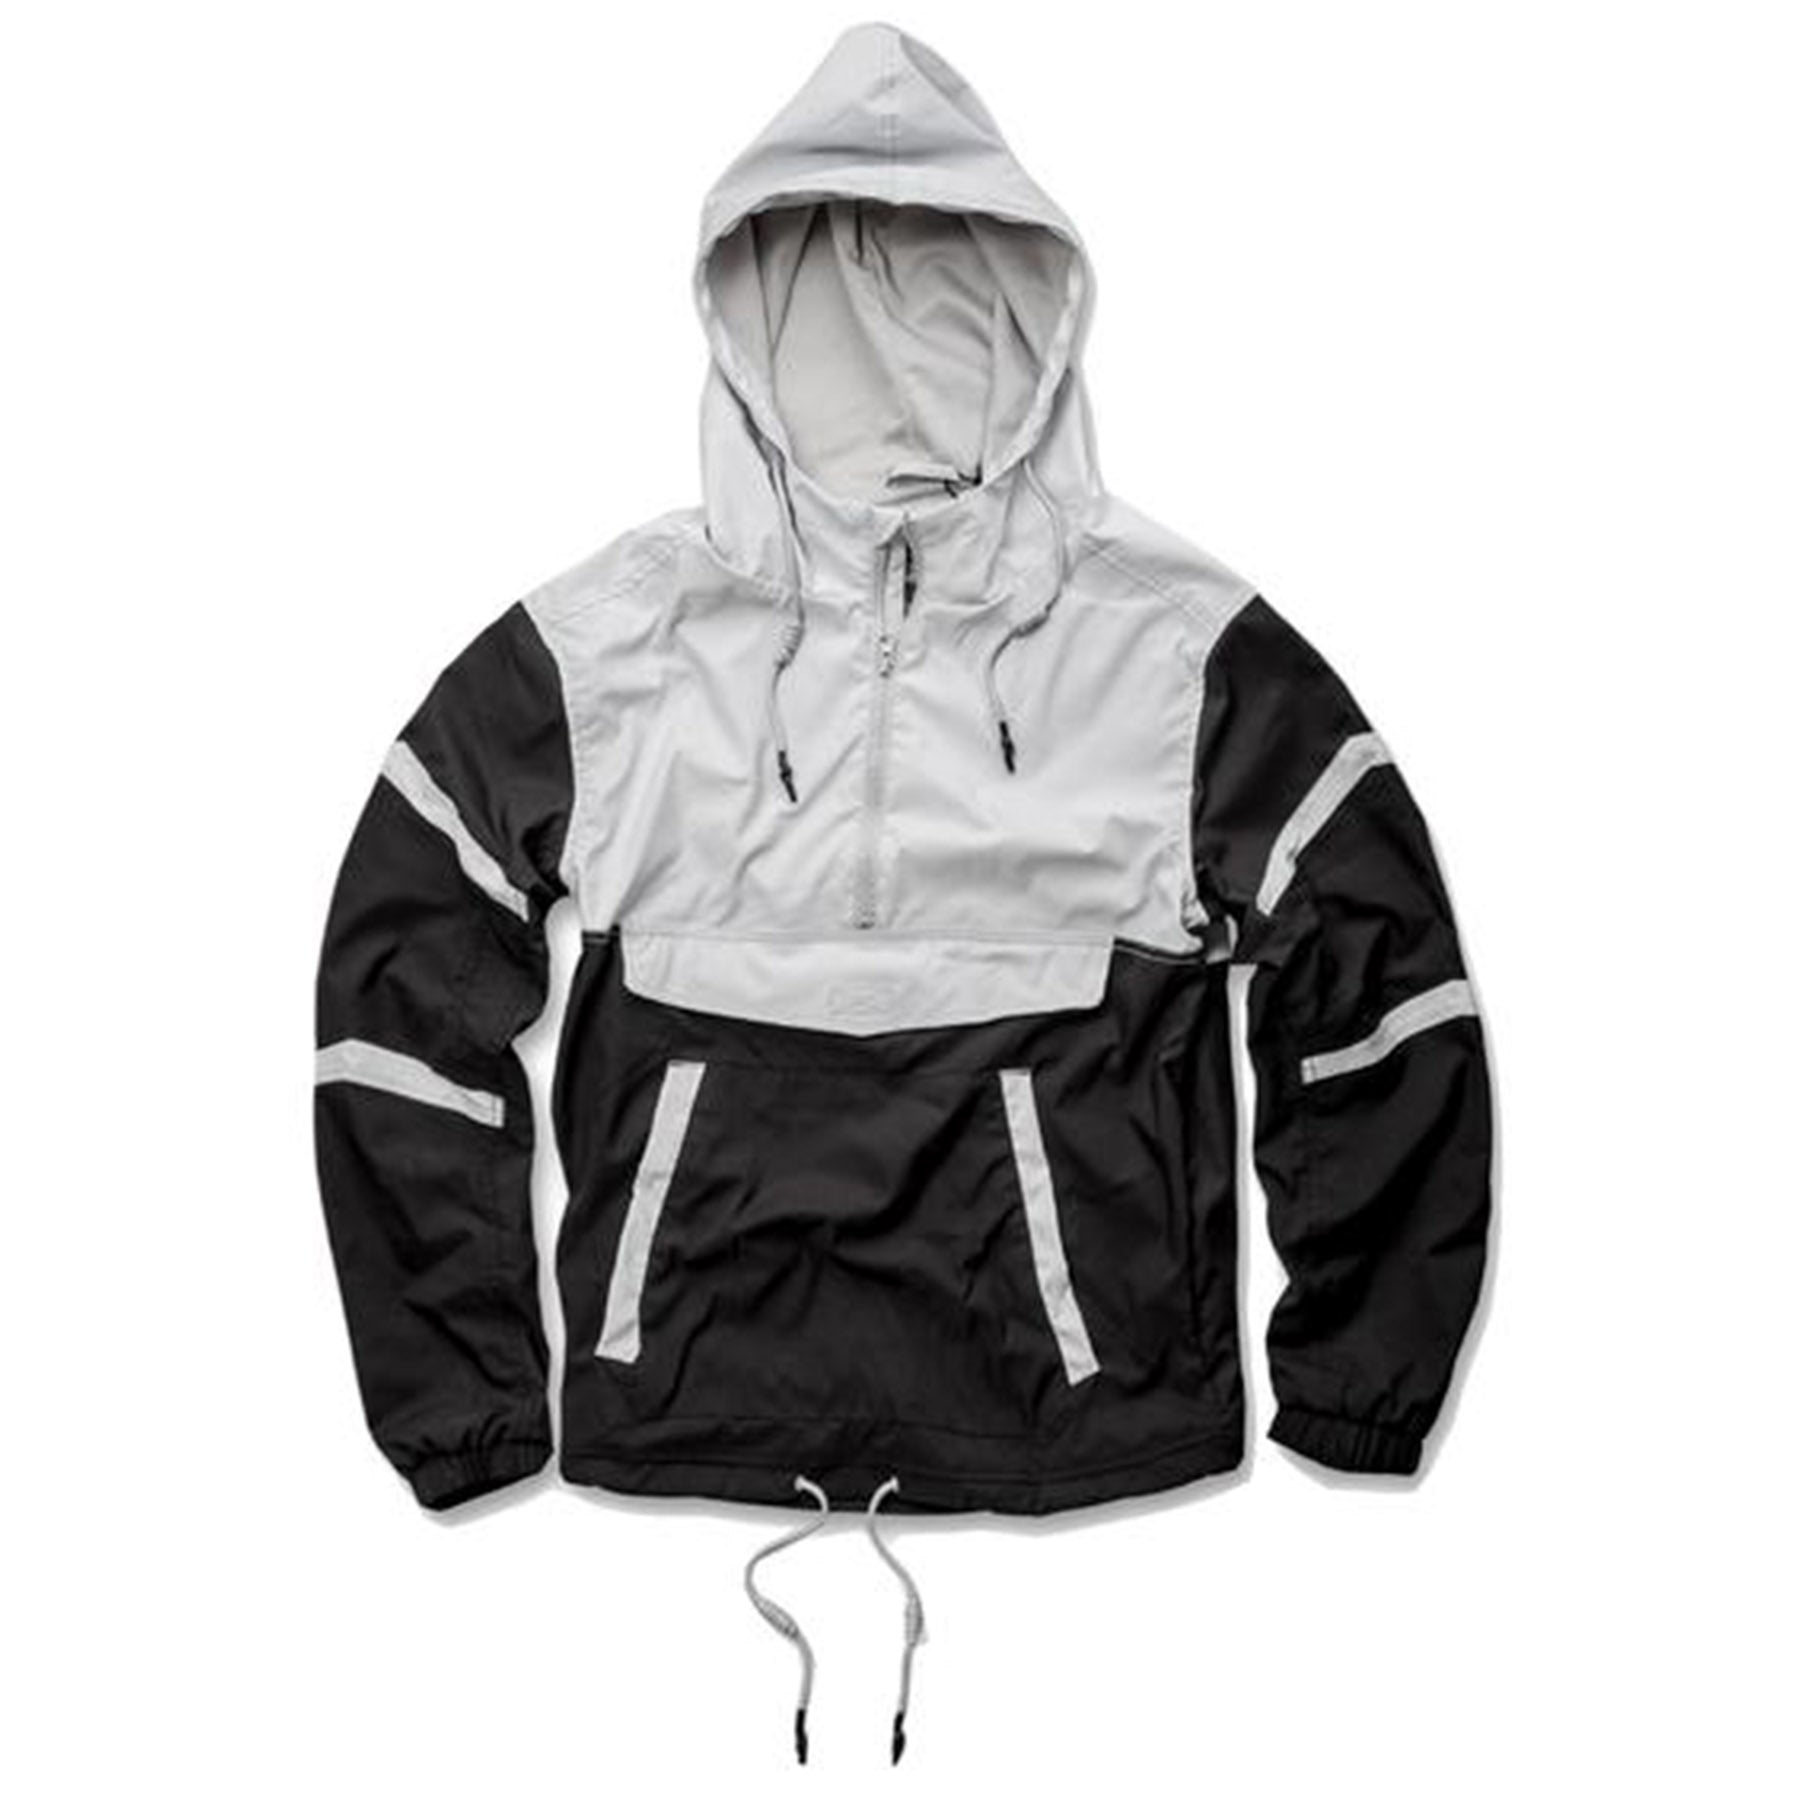 52ae16b14f55 the black and white anorak jacket from jordan craig is black with white  accents on the